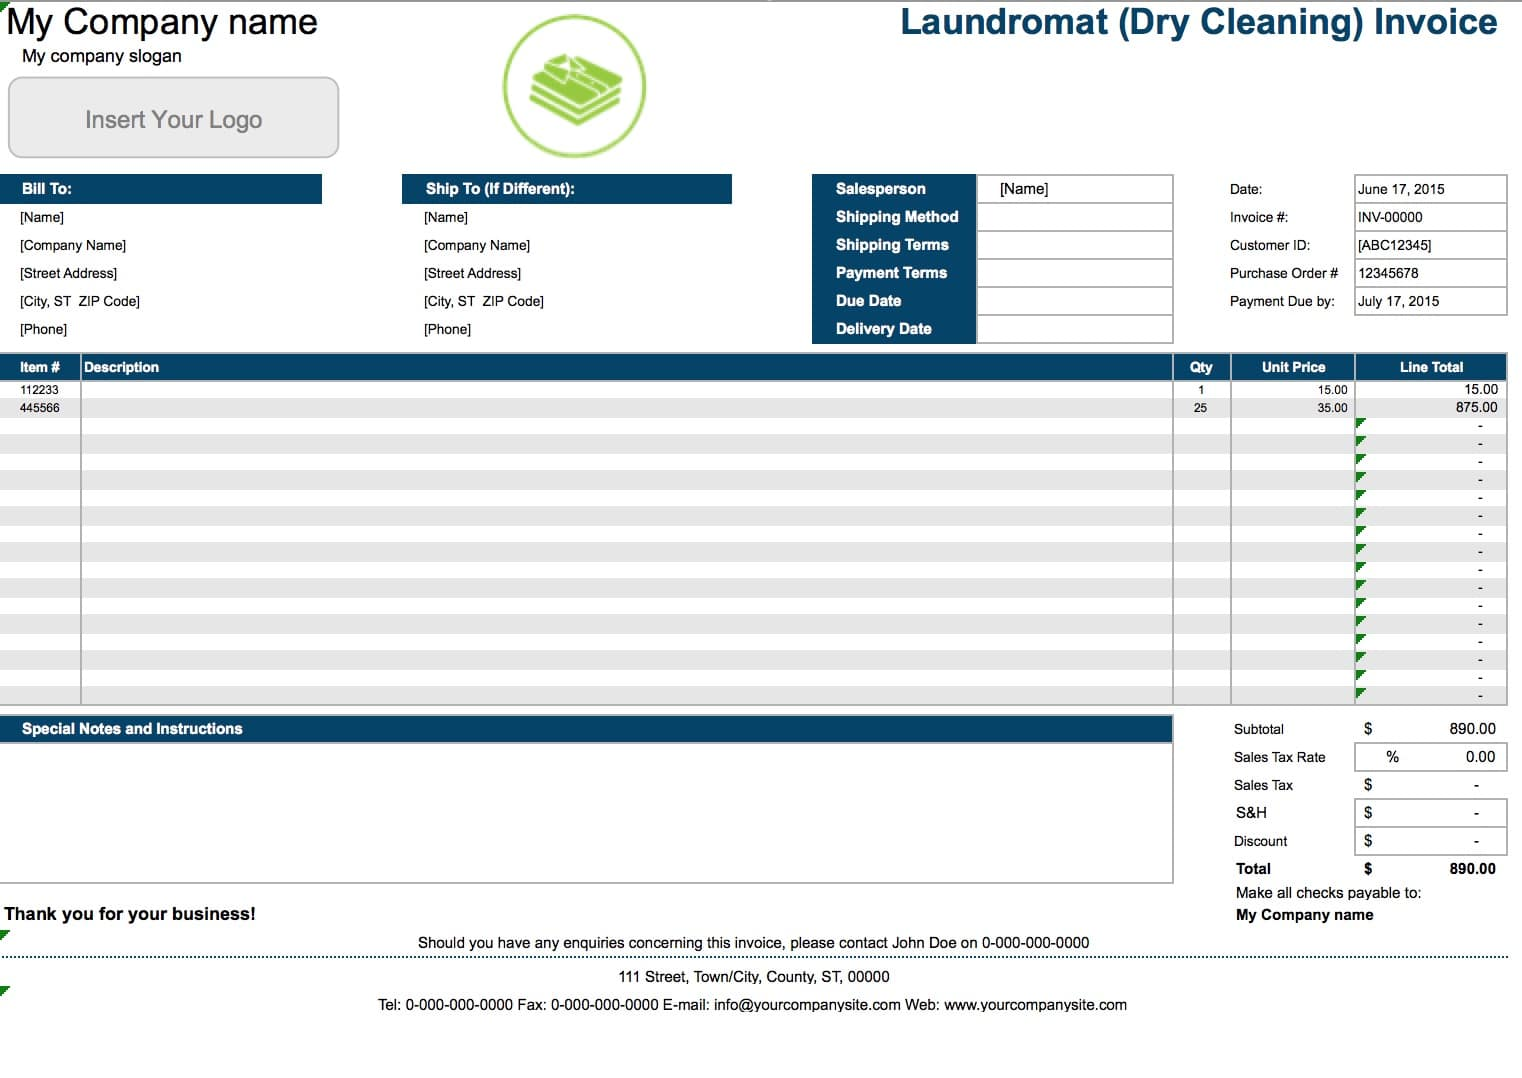 laundromat dry cleaning invoice template excel pdf laundromat dry cleaning invoice template excel pdf word doc